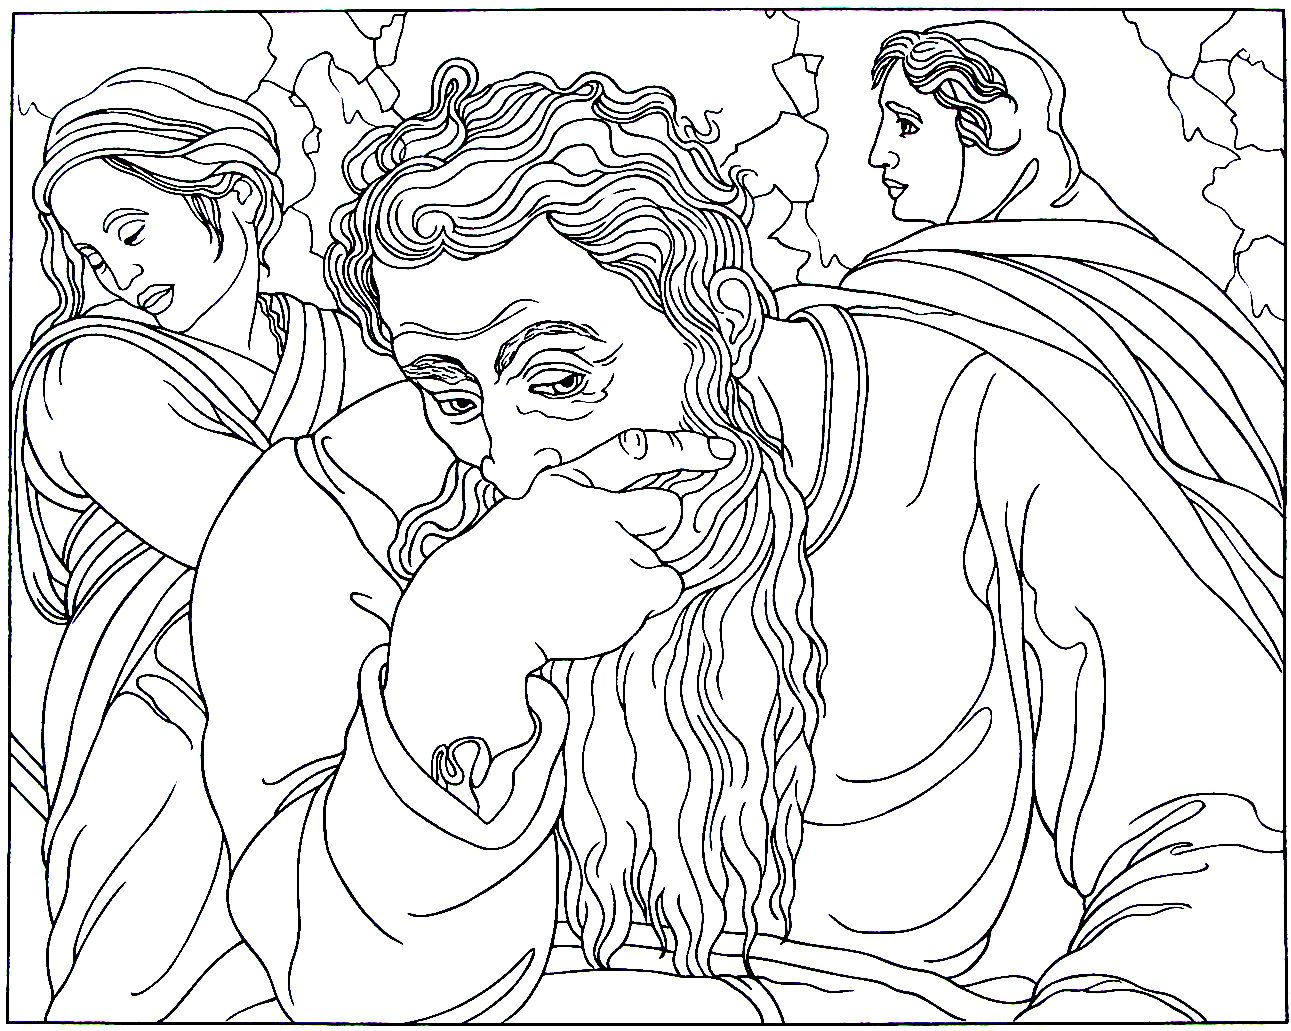 Free Coloring Pages Philip And The Ethiopian Images Of Jeremiah The Prophet Coloring Pages Sabadaphnecottage